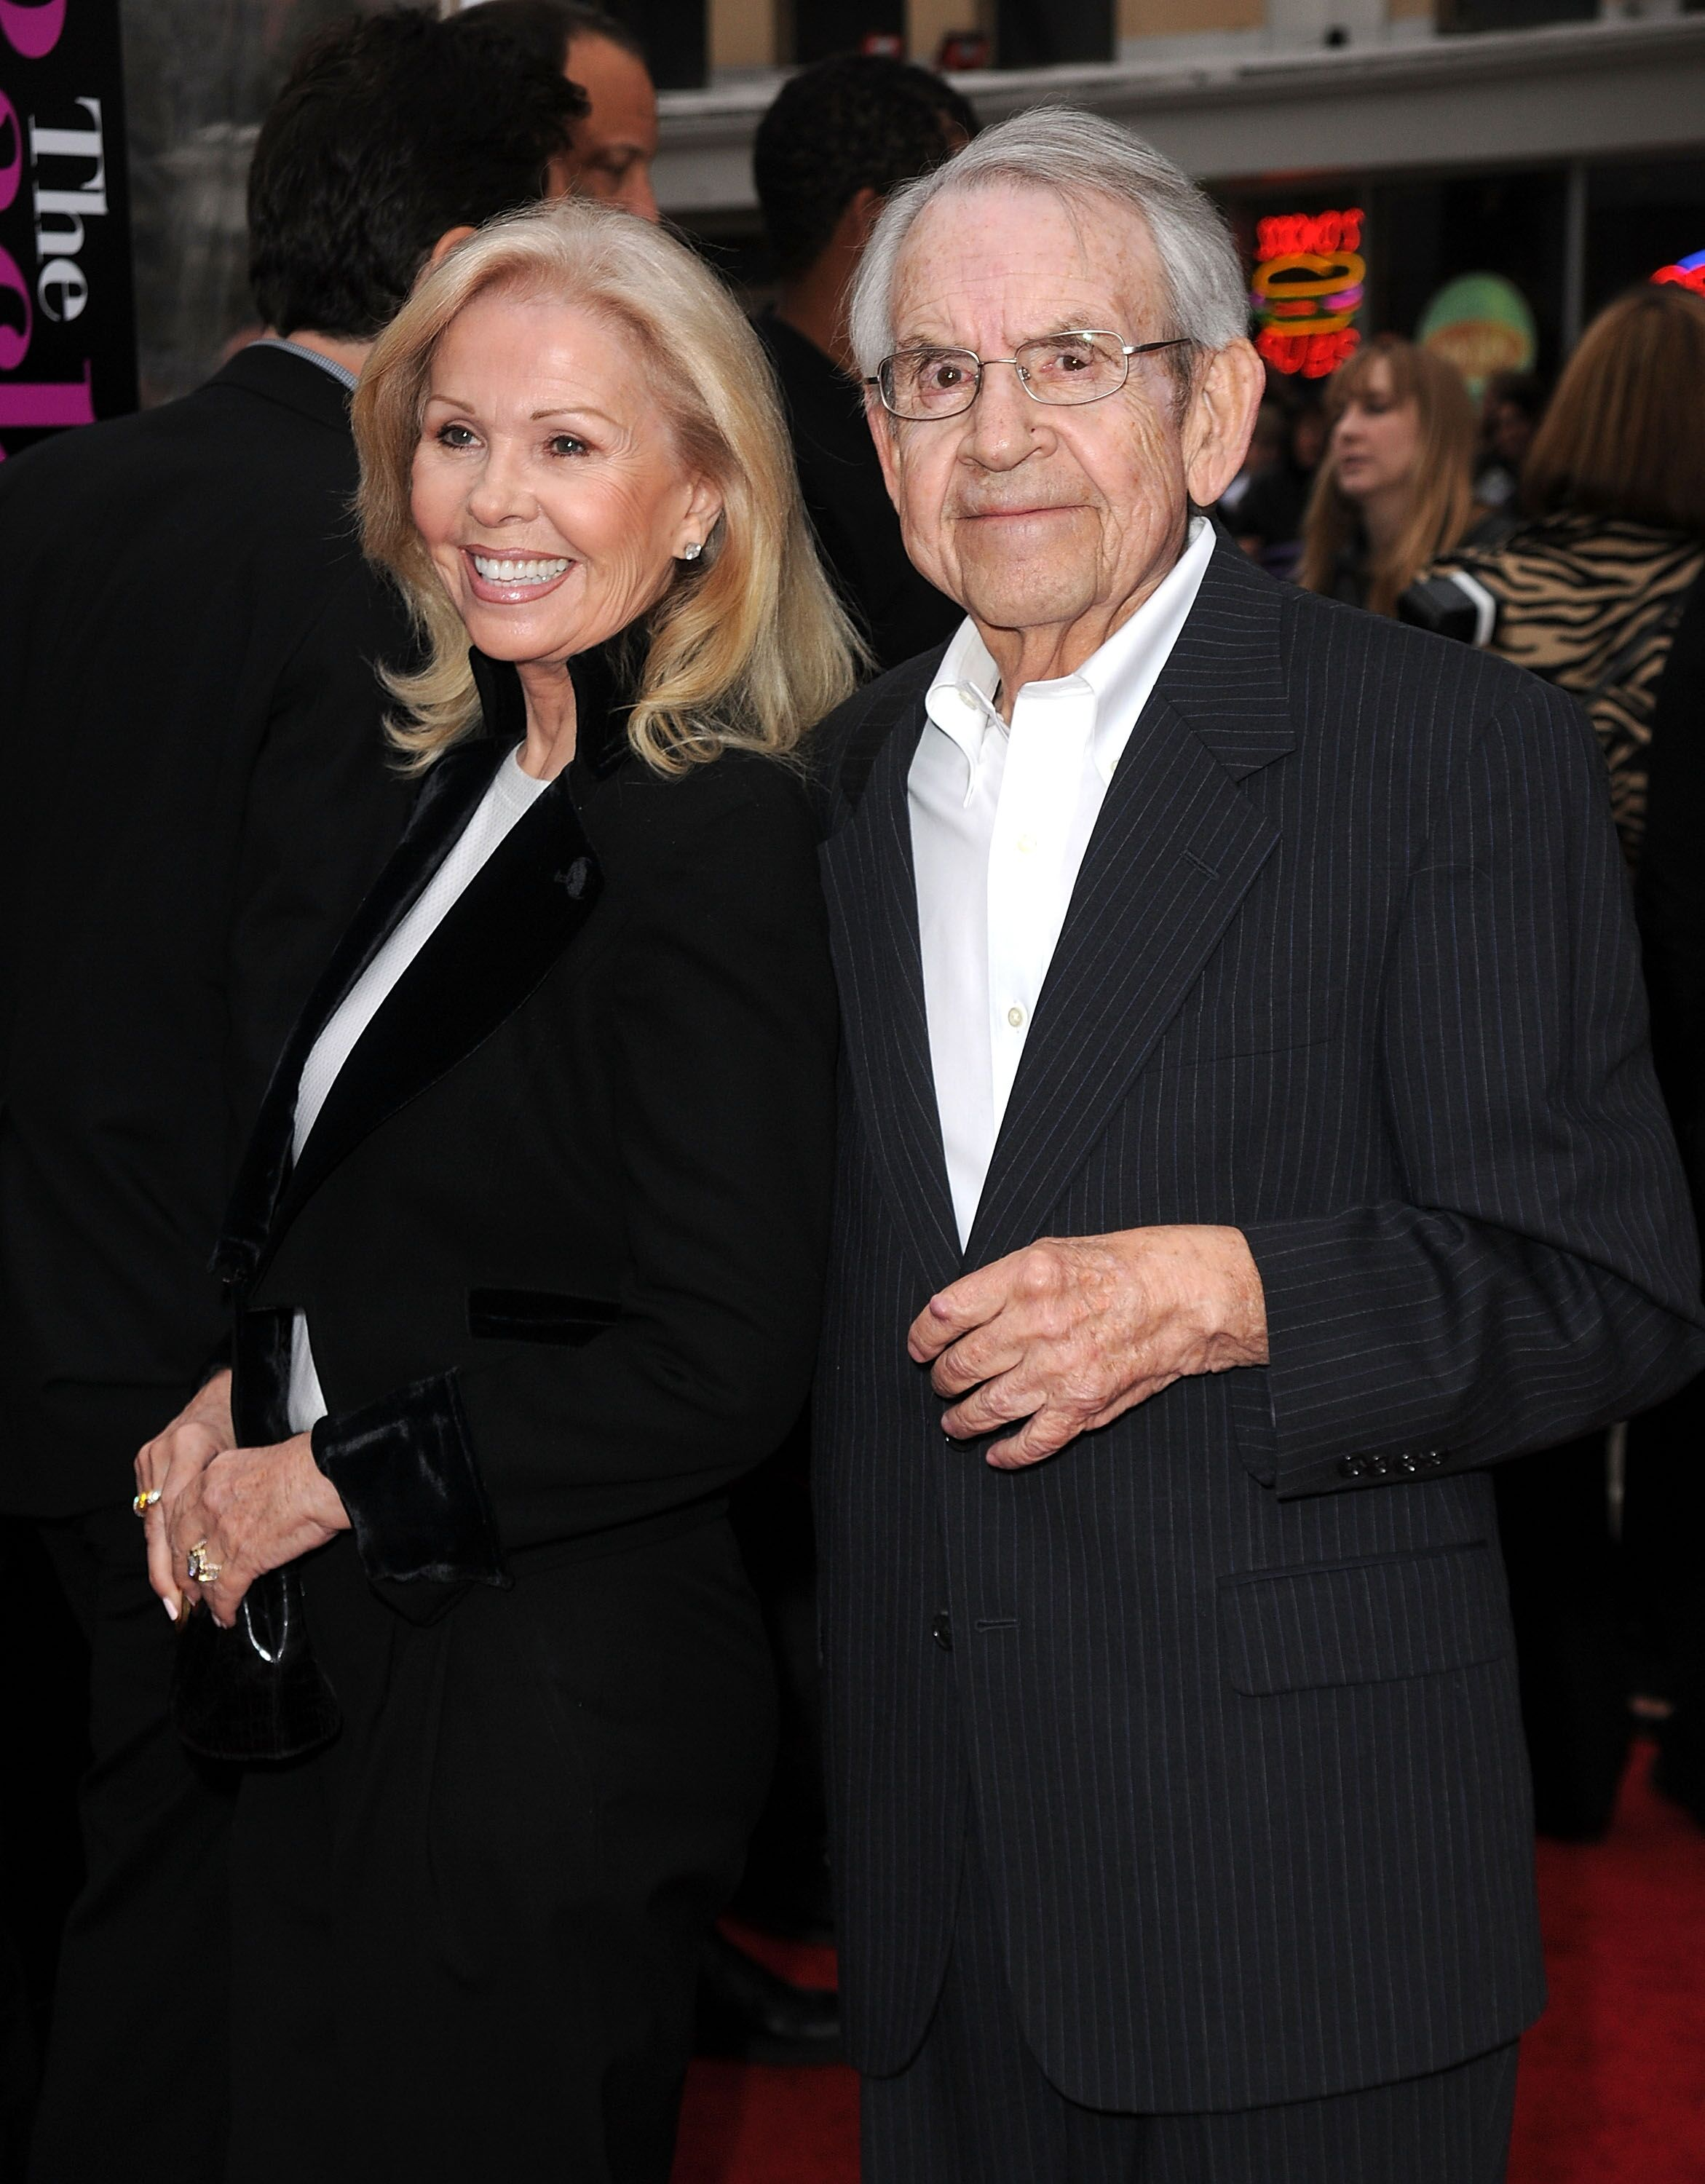 Tom Bosley and his wife actress Patricia Carr at at the premiere of 'The Back-Up Plan' in 2010 | Source: Getty Images